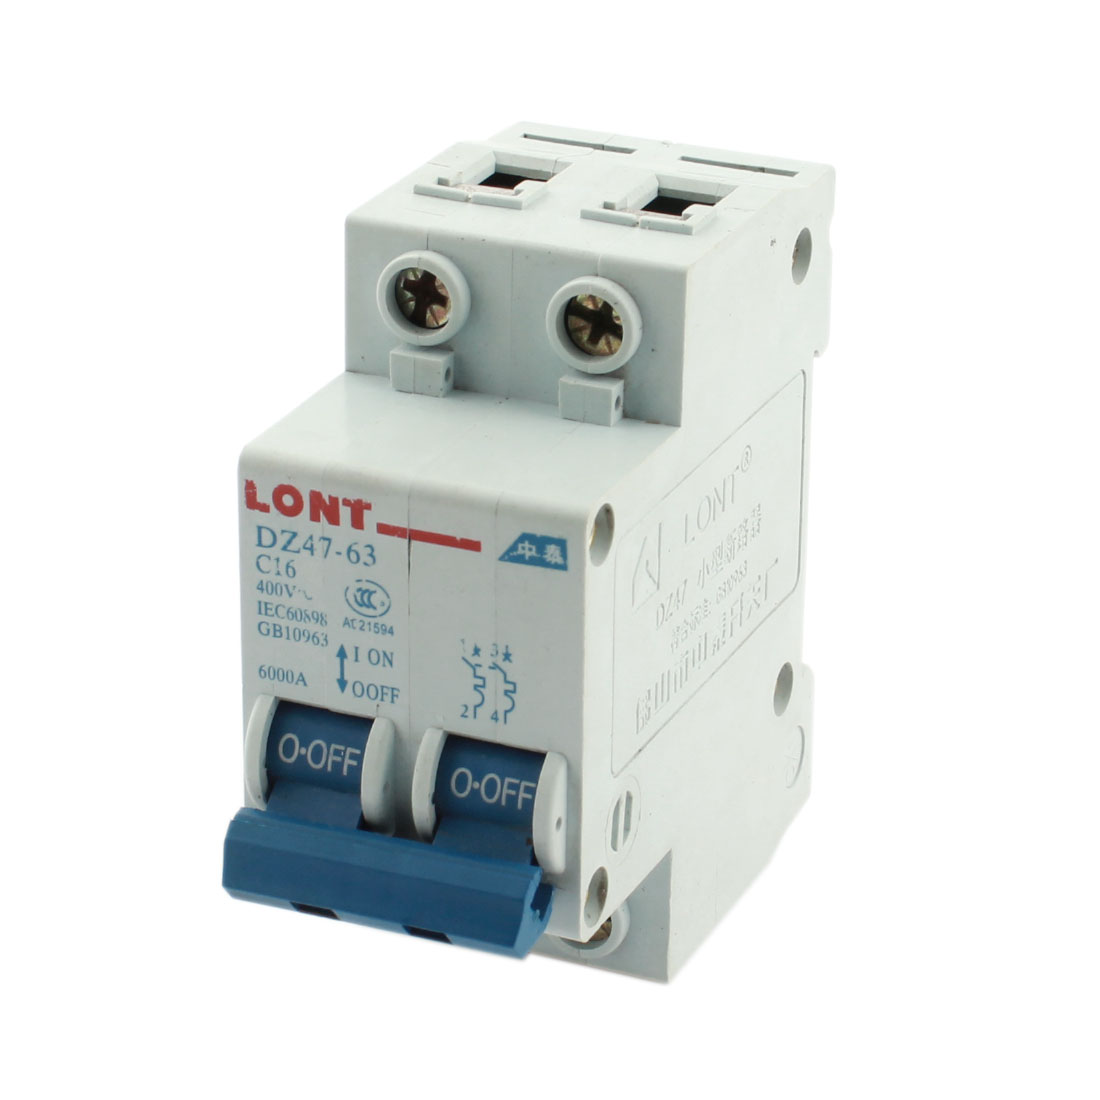 AC 400V 16A 6000A 35mm DIN Rail Mount Dual Pole Overload Protector Mini Circuit Breaker White DZ47-63